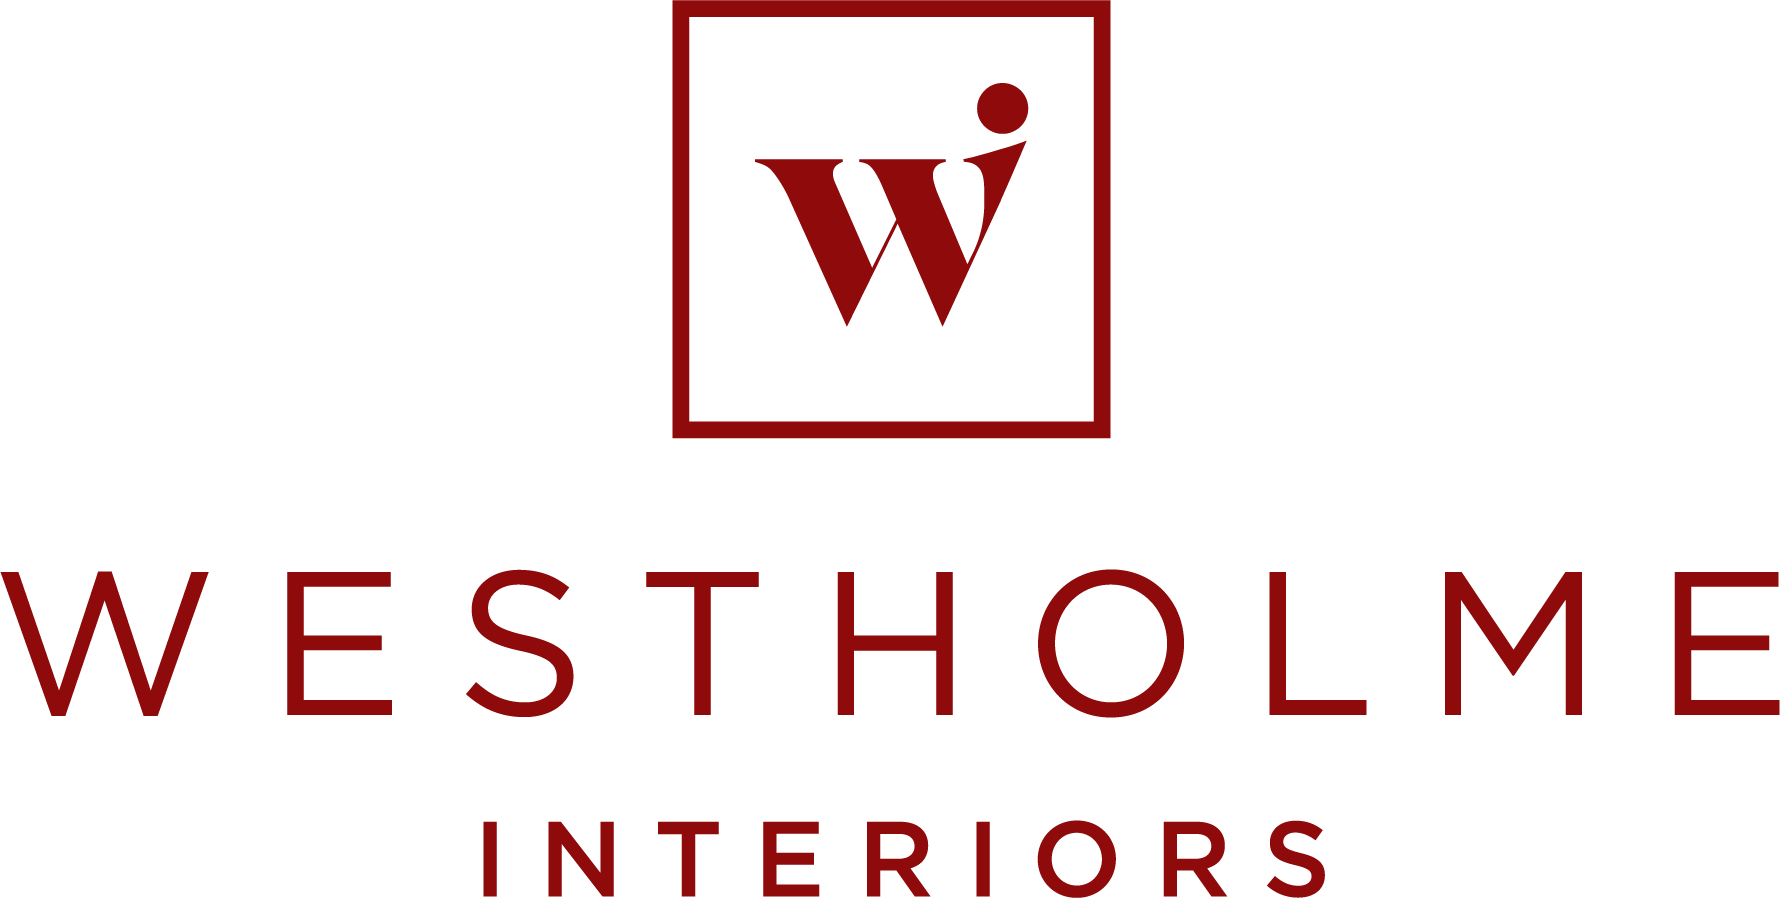 Westholme Interiors